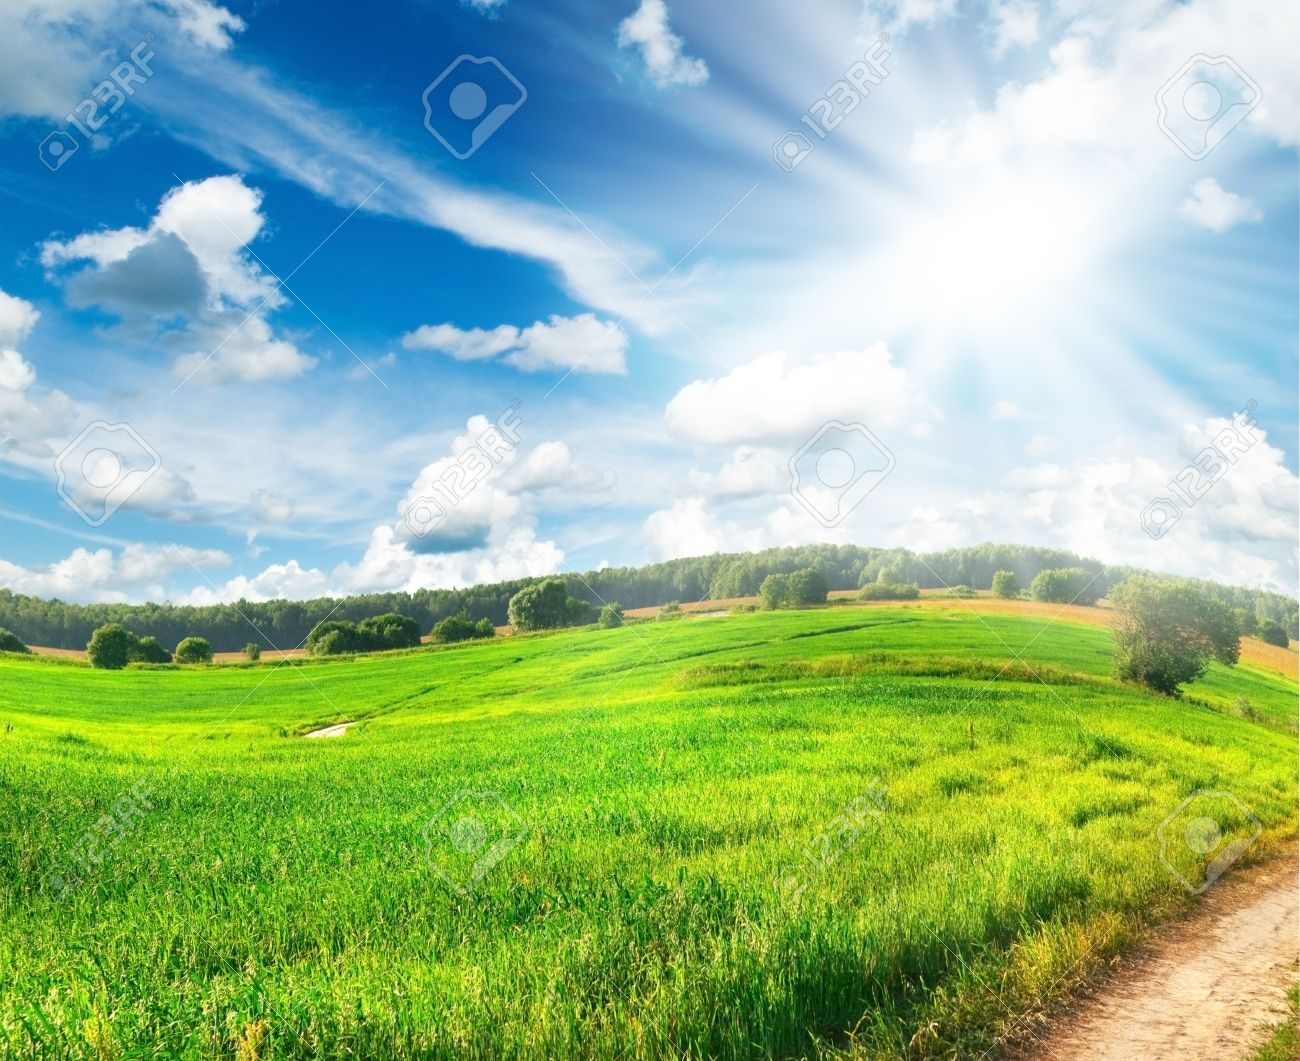 Summer landscape with green grass, road and clouds - 8707822